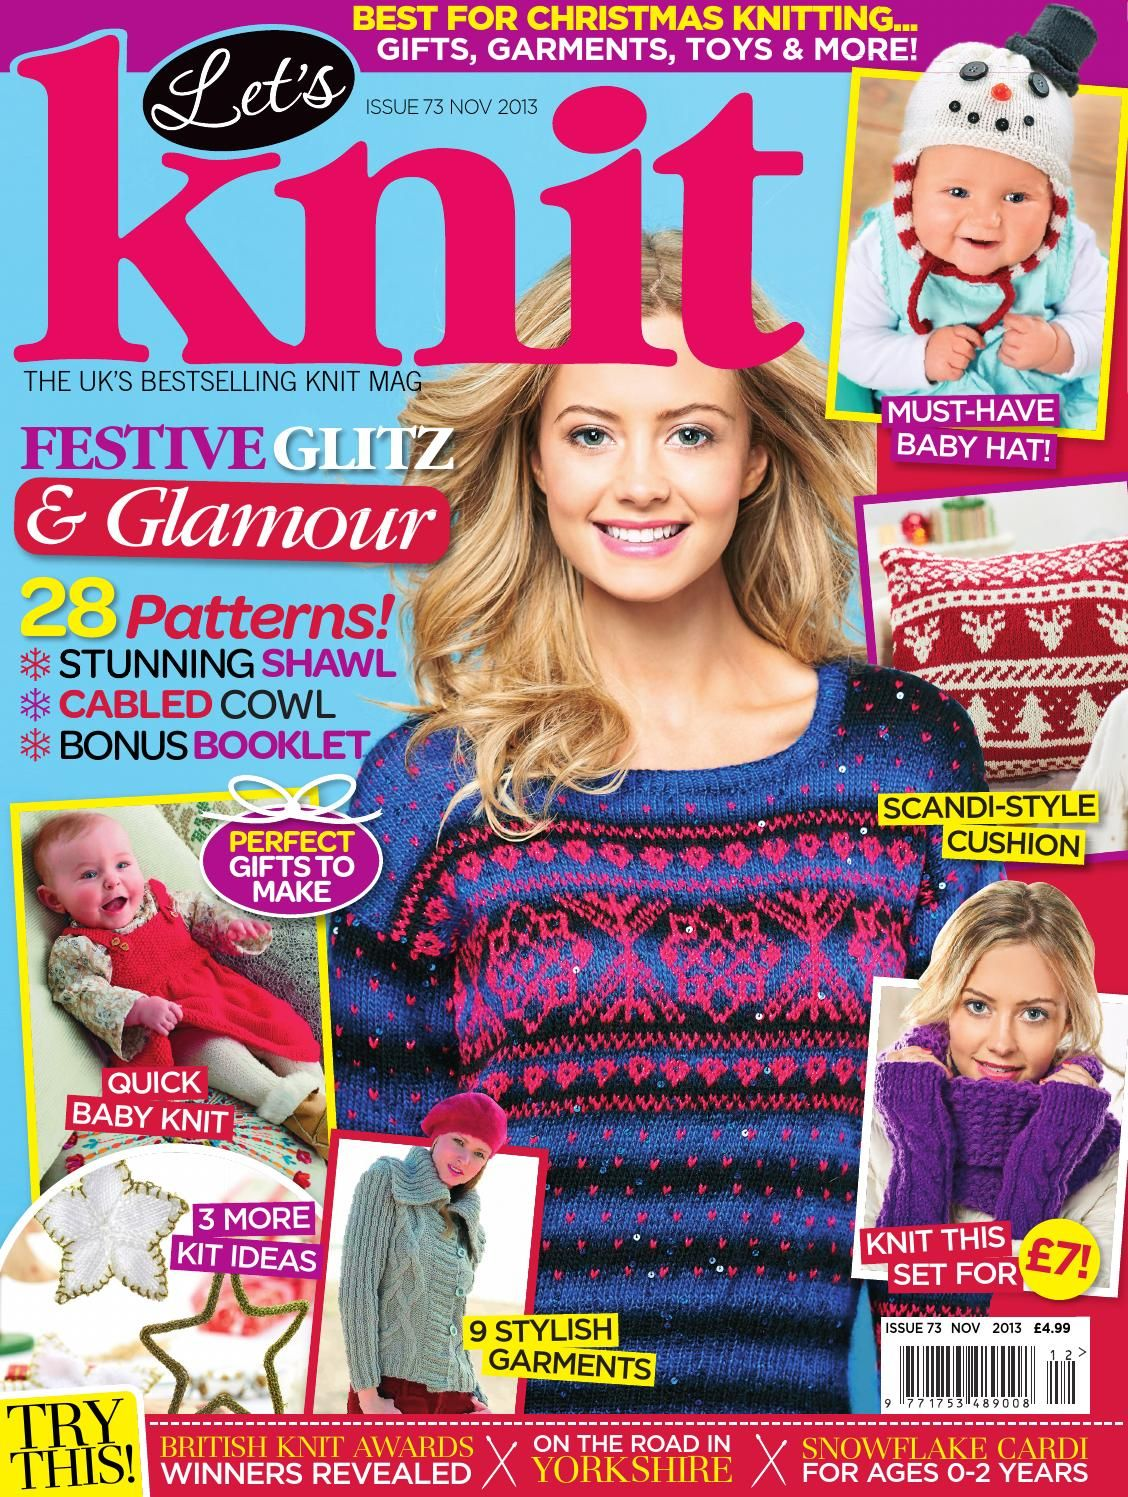 2019 year for lady- Stylish simply knitting how many issues